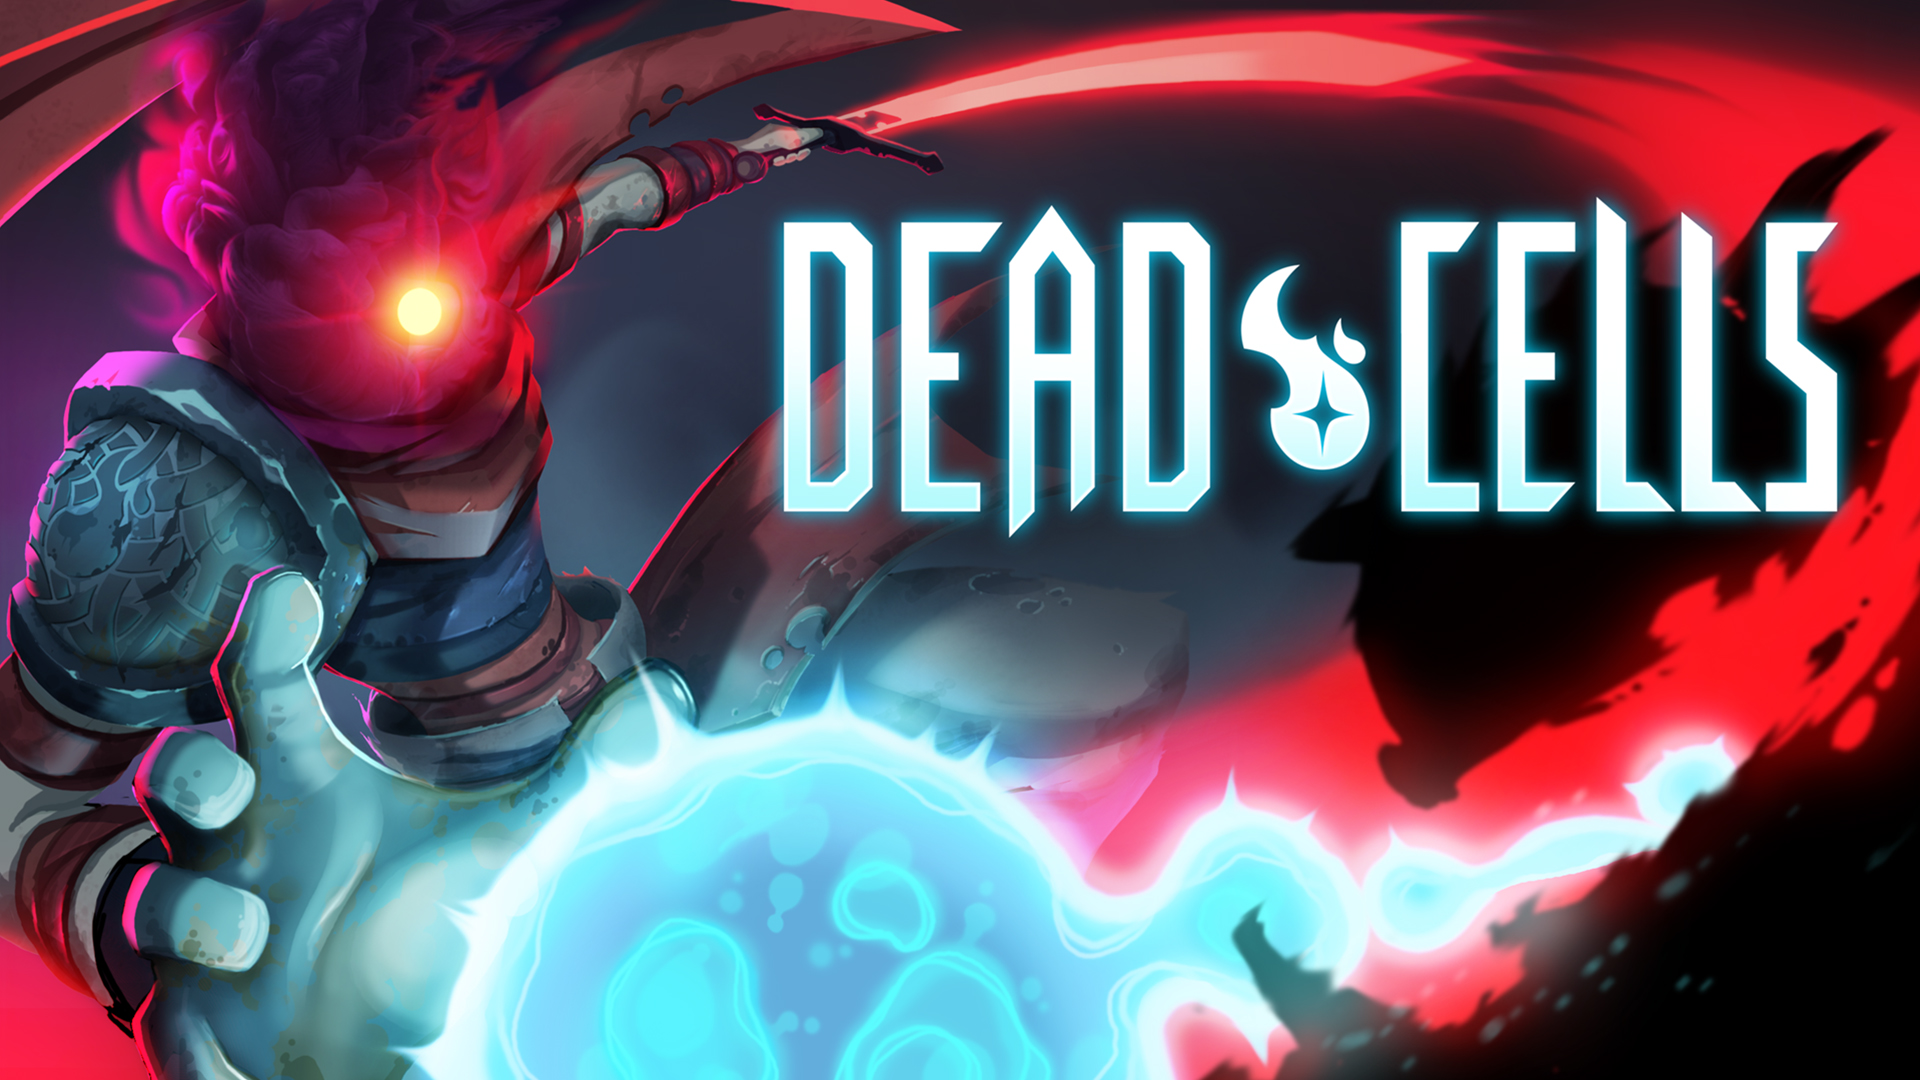 Promotional art for the metroidvania video game Dead Cells